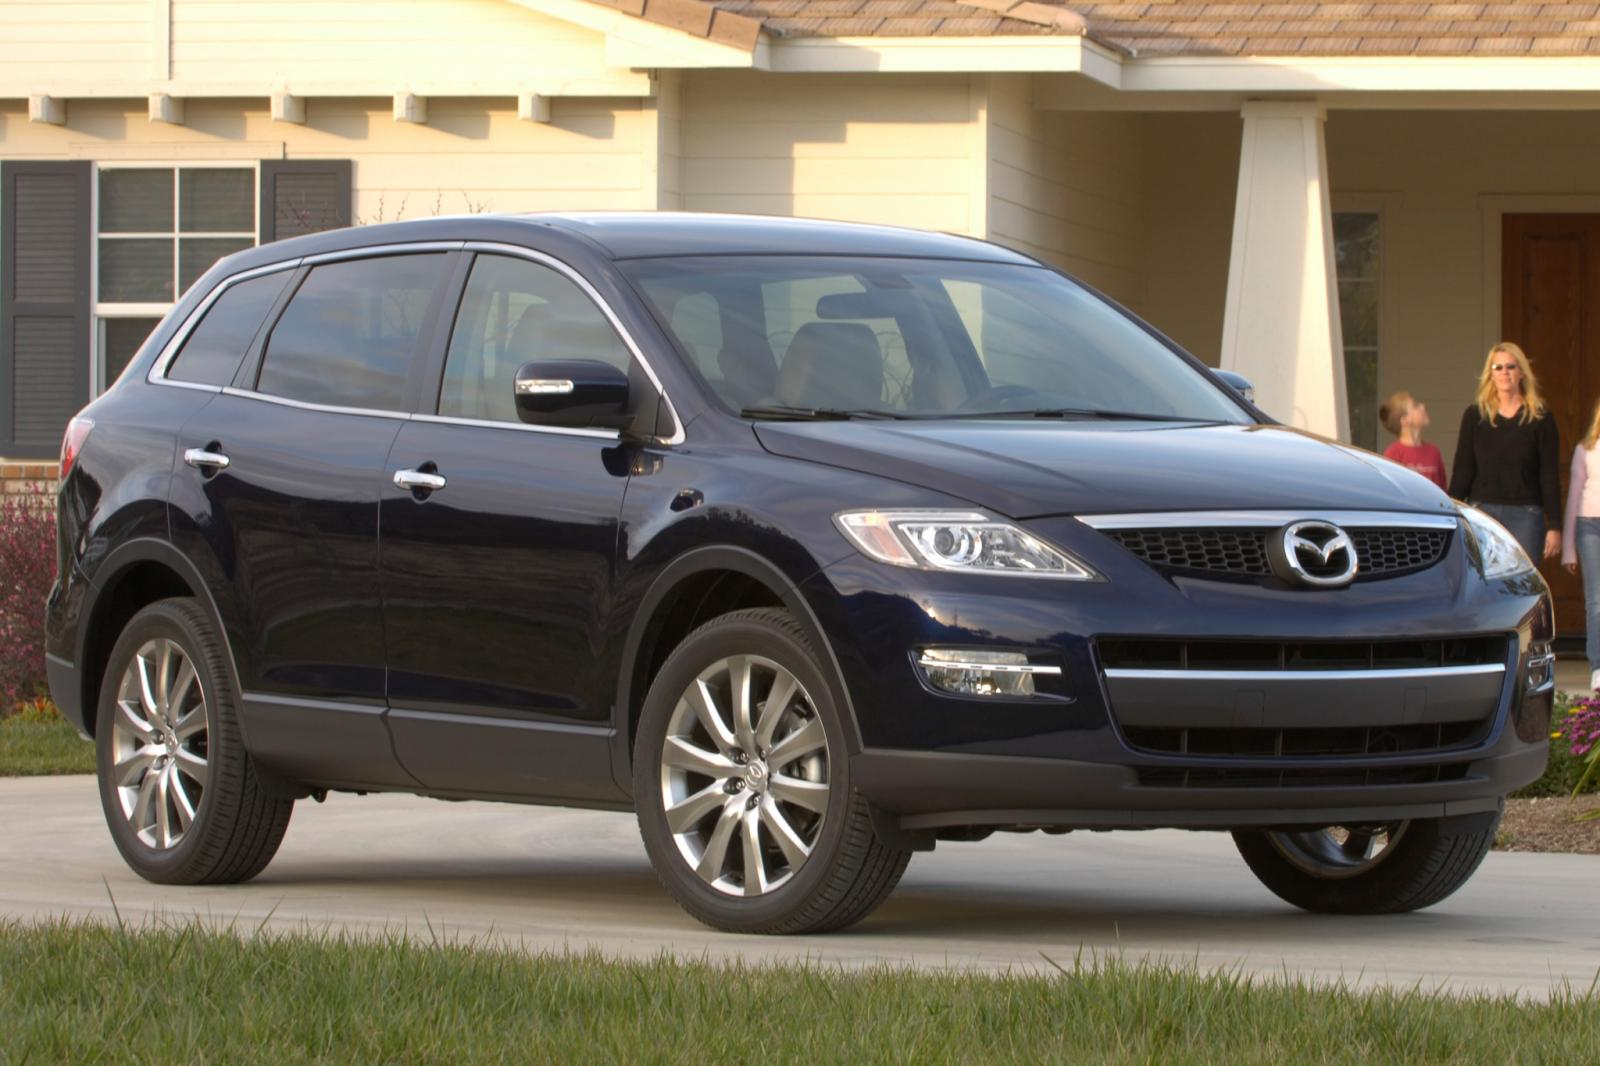 2009 mazda cx 9 information and photos zombiedrive. Black Bedroom Furniture Sets. Home Design Ideas